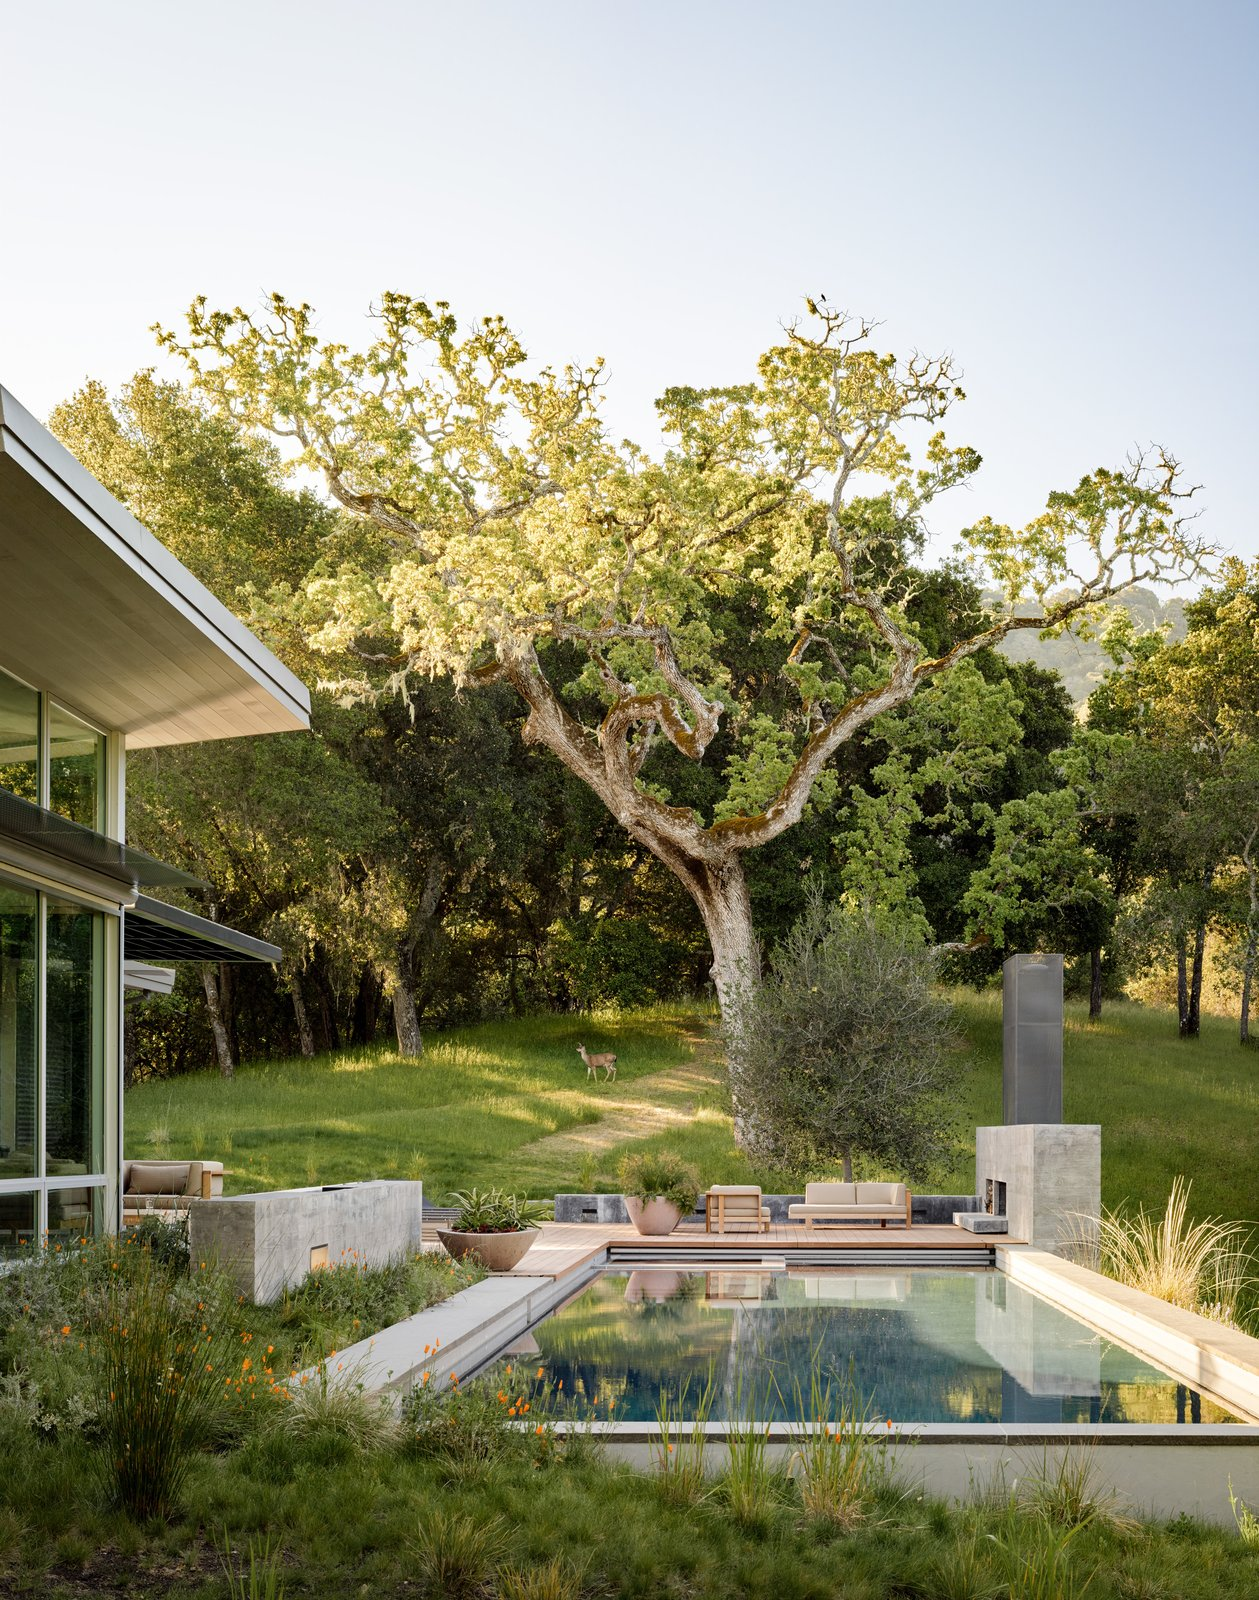 Outdoor, Back Yard, Front Yard, Side Yard, Swimming Pools, Tubs, Shower, Trees, and Grass Wildlife are frequent visitors here, but the area's active woodpeckers aren't very welcome, so the house is clad in corrugated metal siding by Recla Metals.  Modern Pool Design by Dwell from A Meadow With Amenities